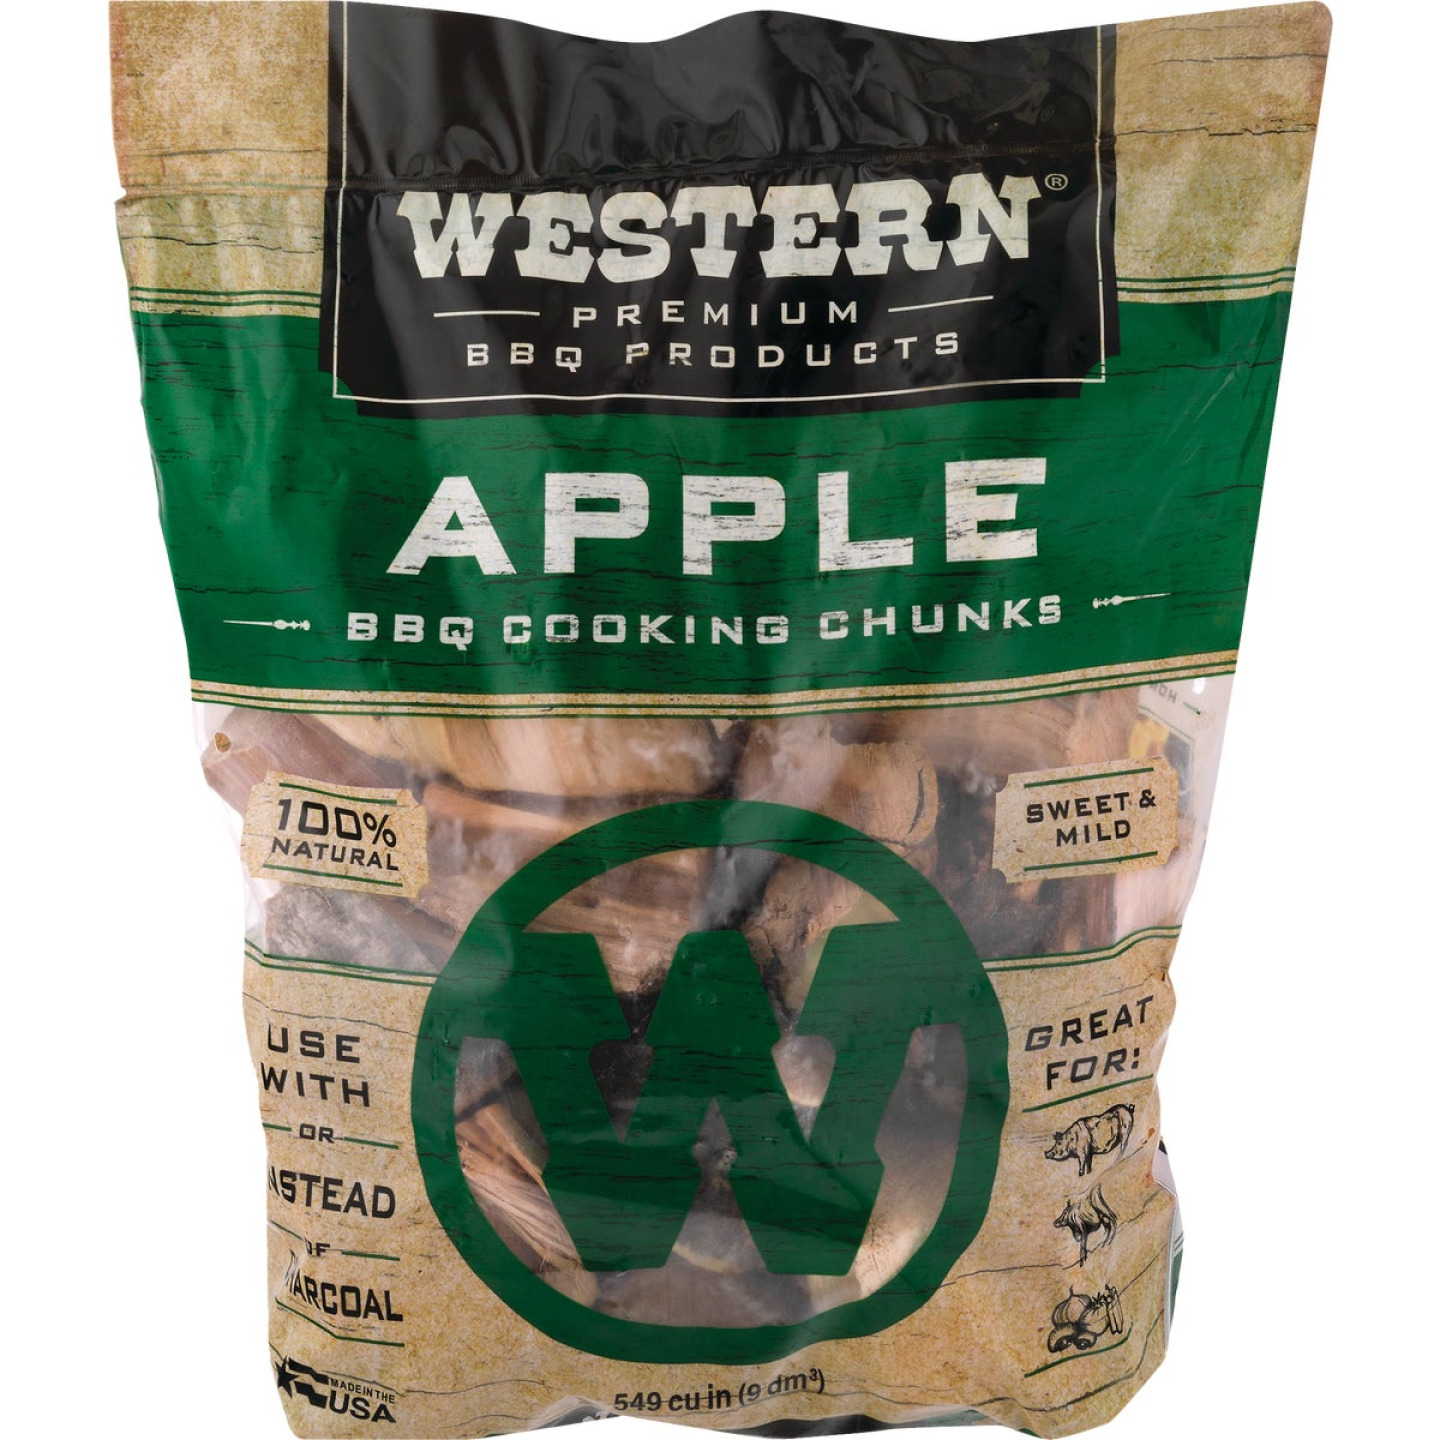 Western 6 Lb. Apple Wood Smoking Chunks Image 3